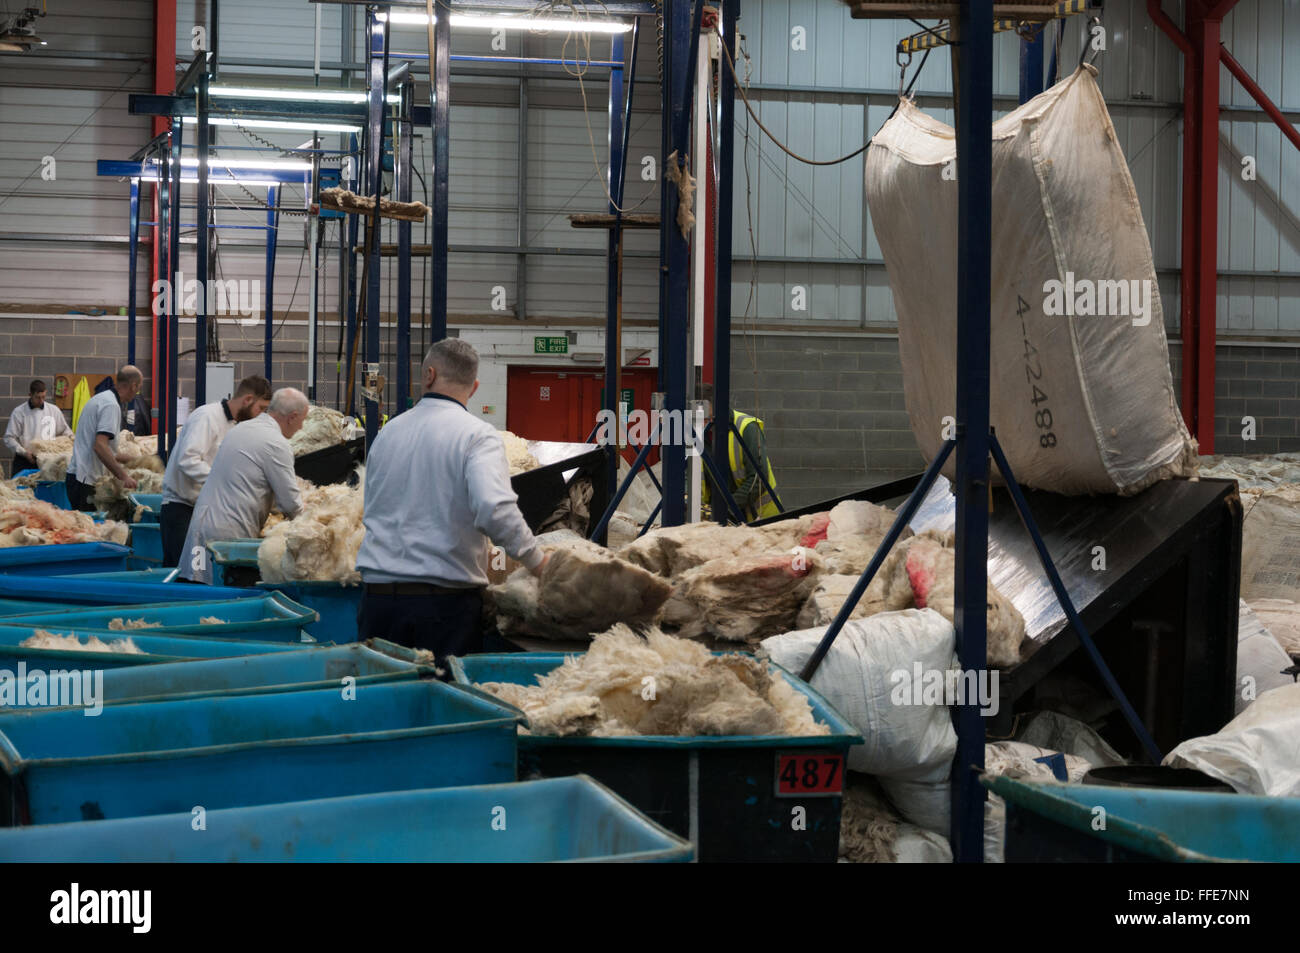 Wool being sorted and graded in Bradford England - Stock Image